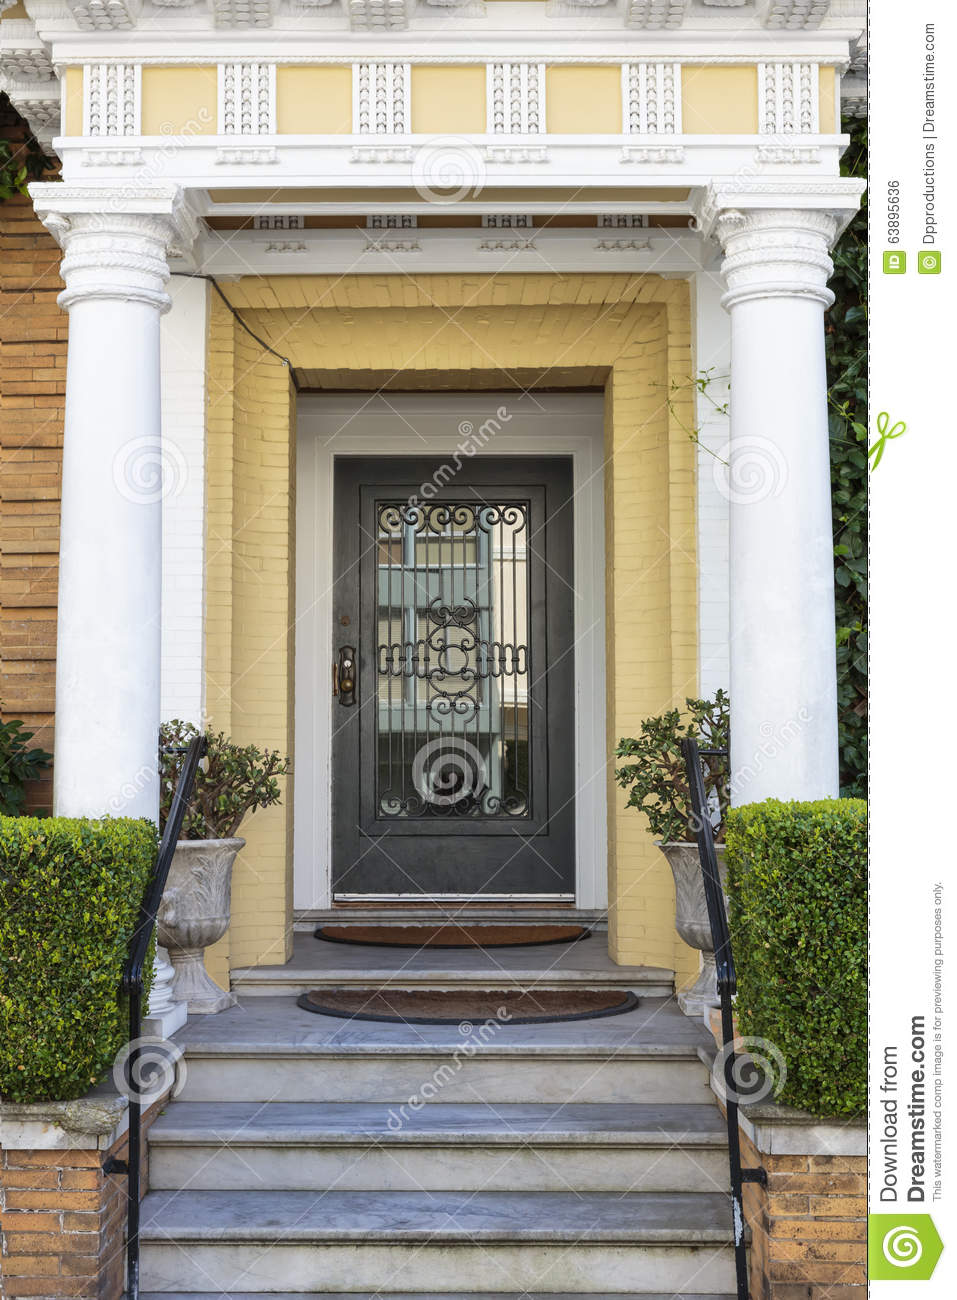 Paint For Concrete Pillars : Front door vertical with yellow paint stock photo image